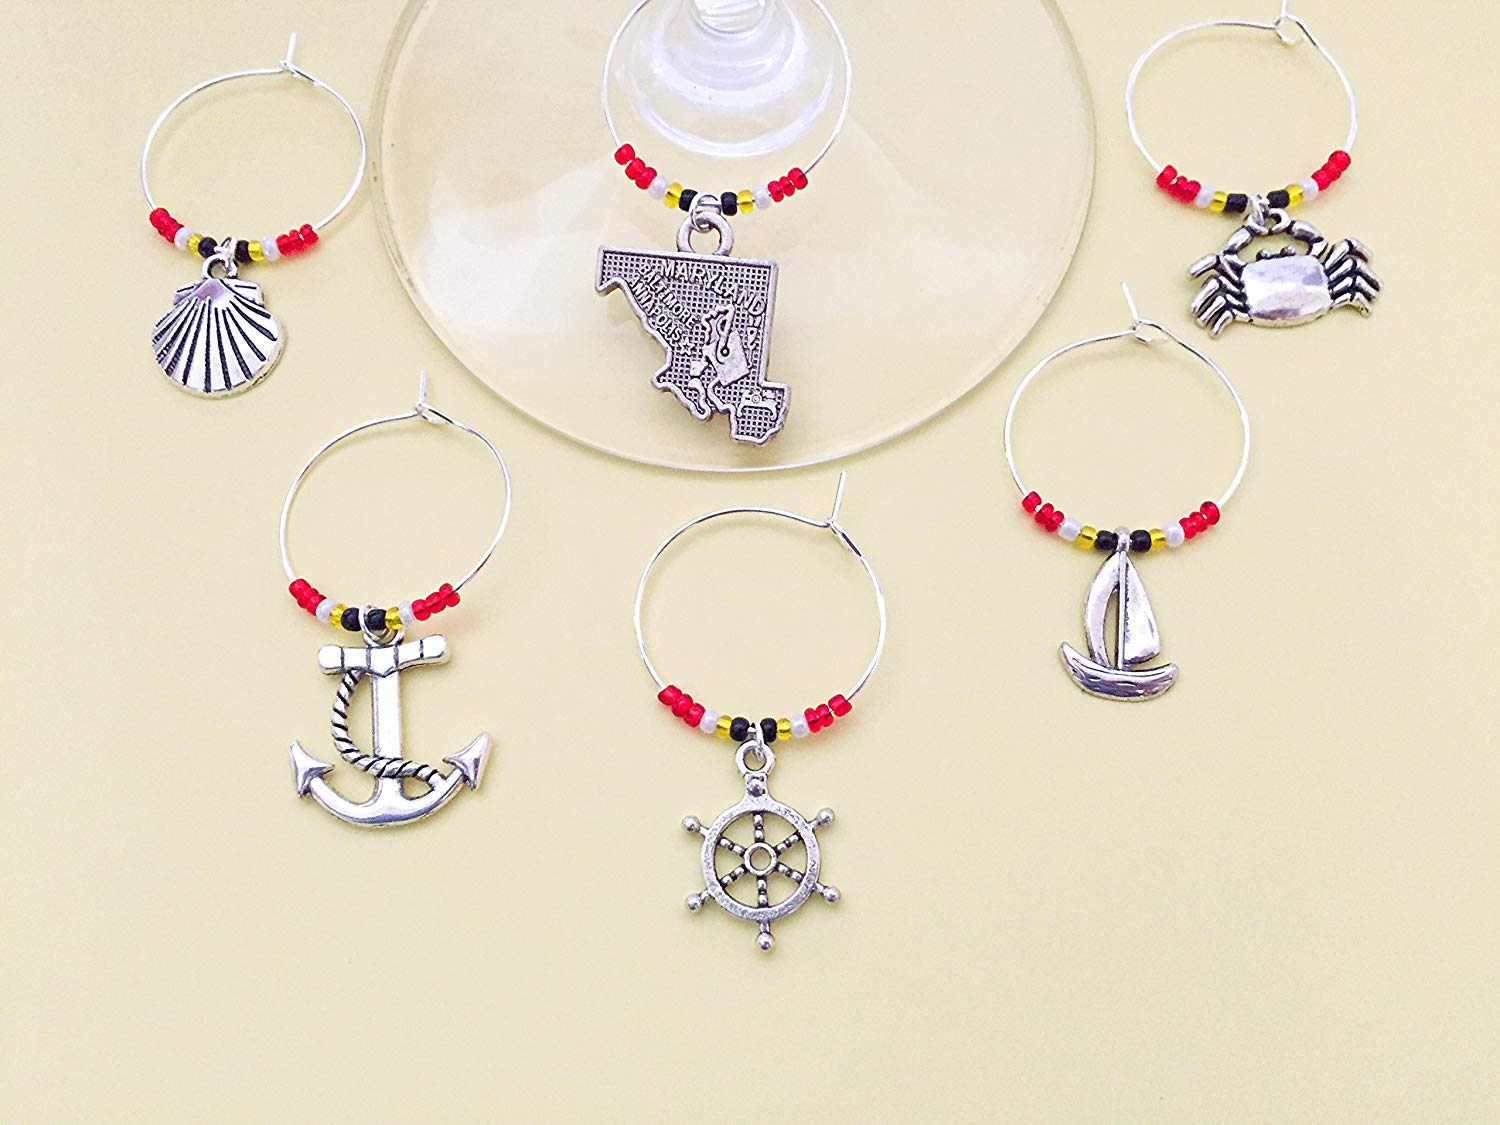 Maryland Nautical Themed Wine Charms, Ships Ahoy, Sailing gift. Includes Maryland state, Crab, Anchor, Ship Wheel, Lighthouse, Sailboat etc. Beach lover gift. Set of 8. MARYLAND FLAG THEMED BEADS.